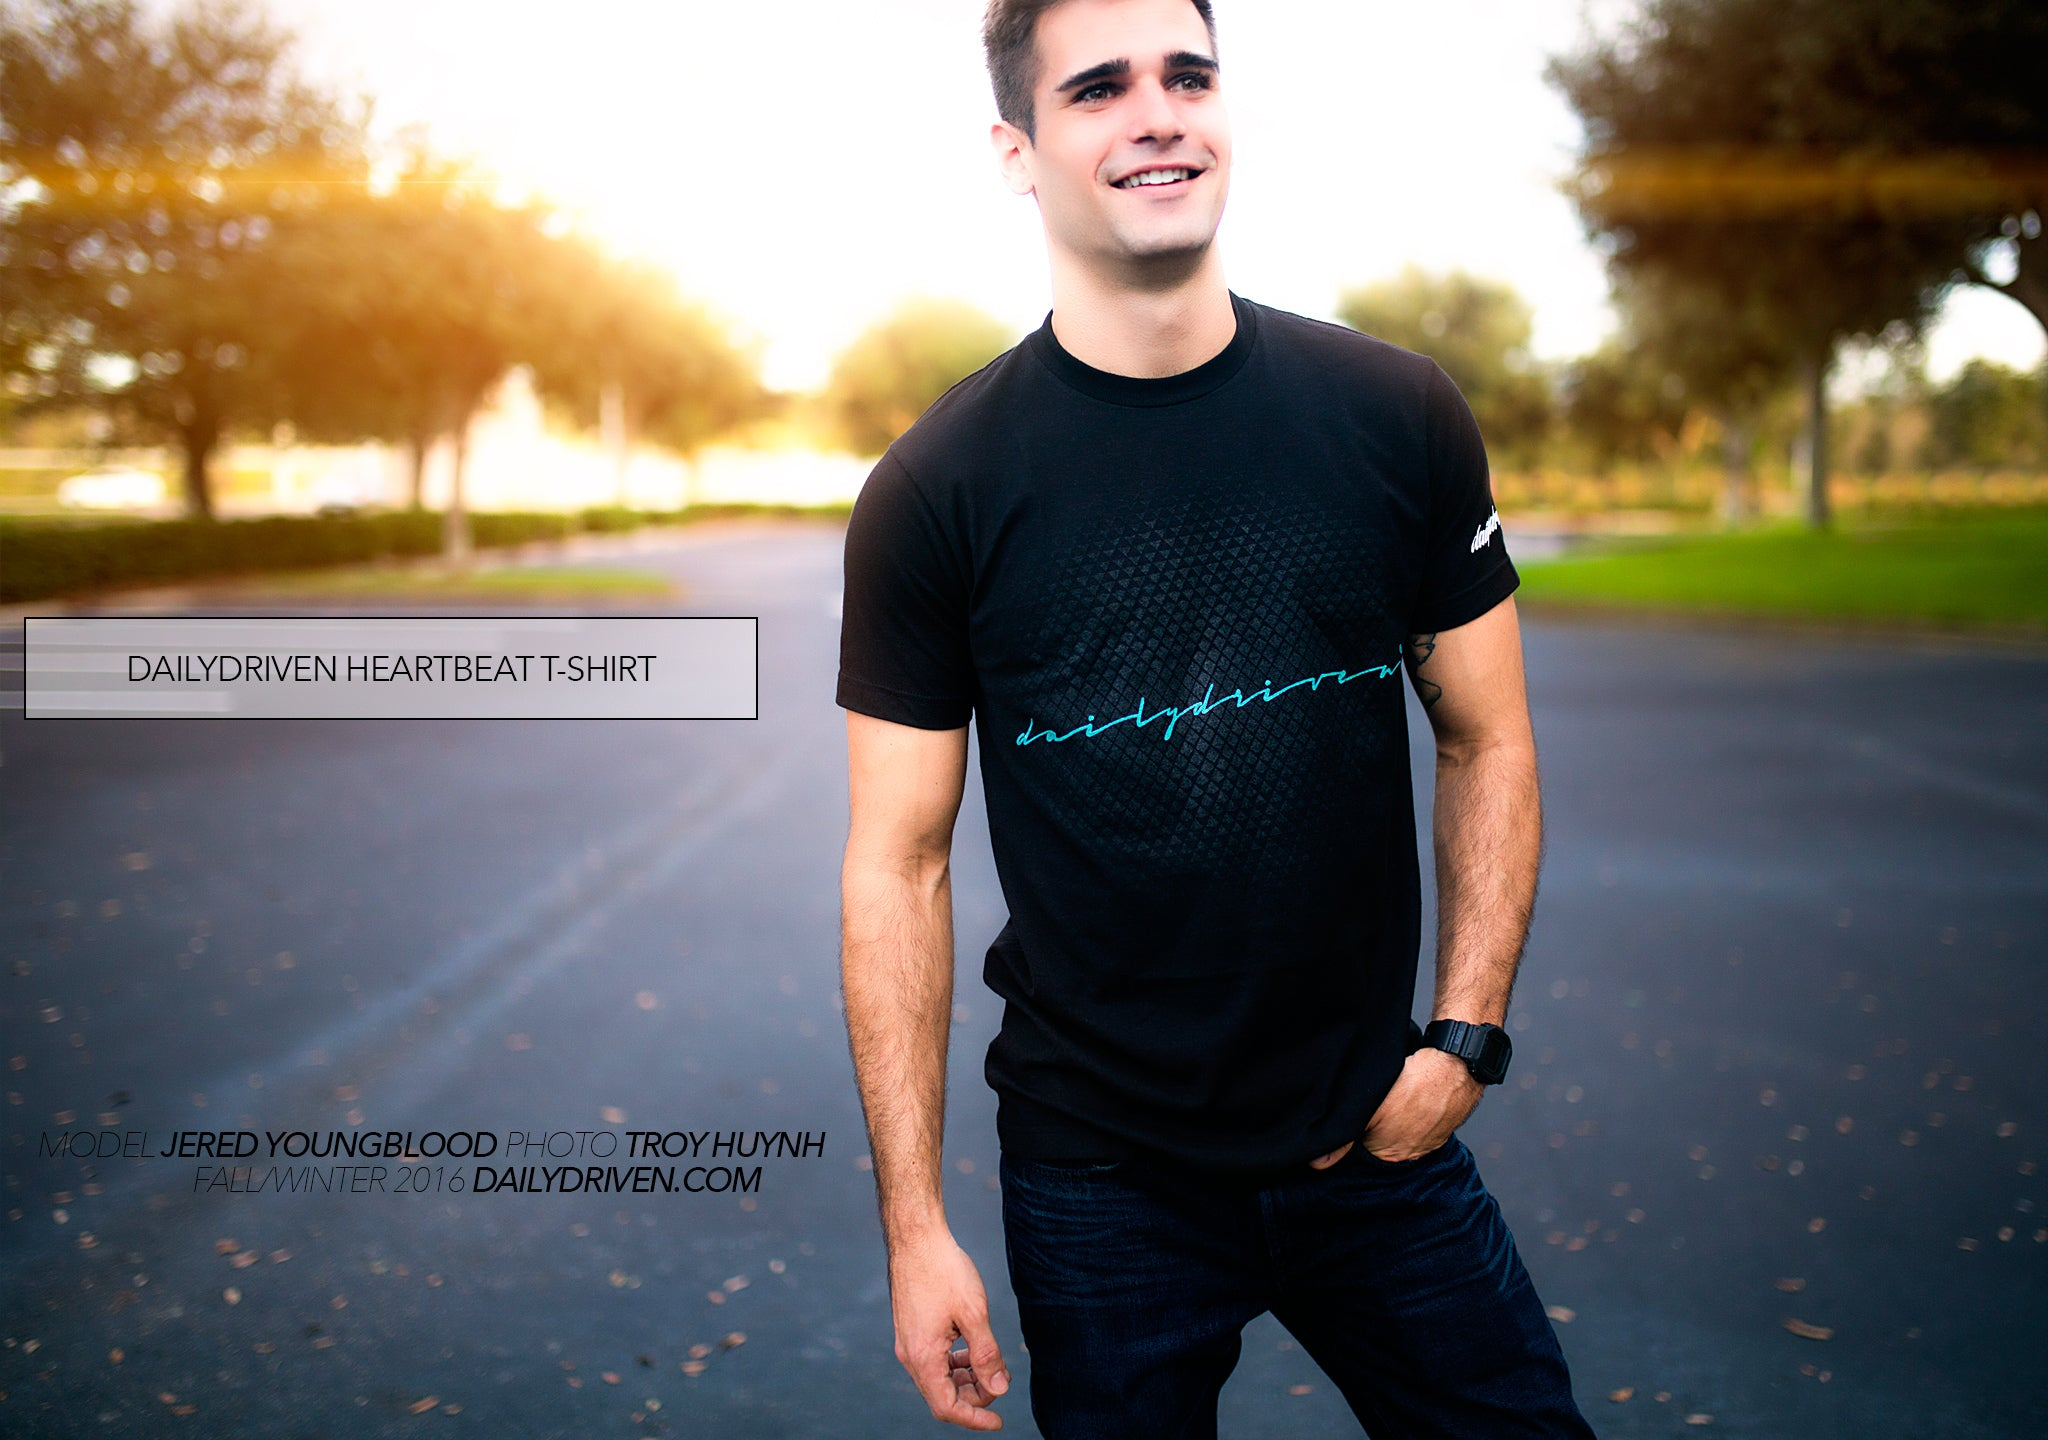 DailyDriven Heartbeat T-Shirt